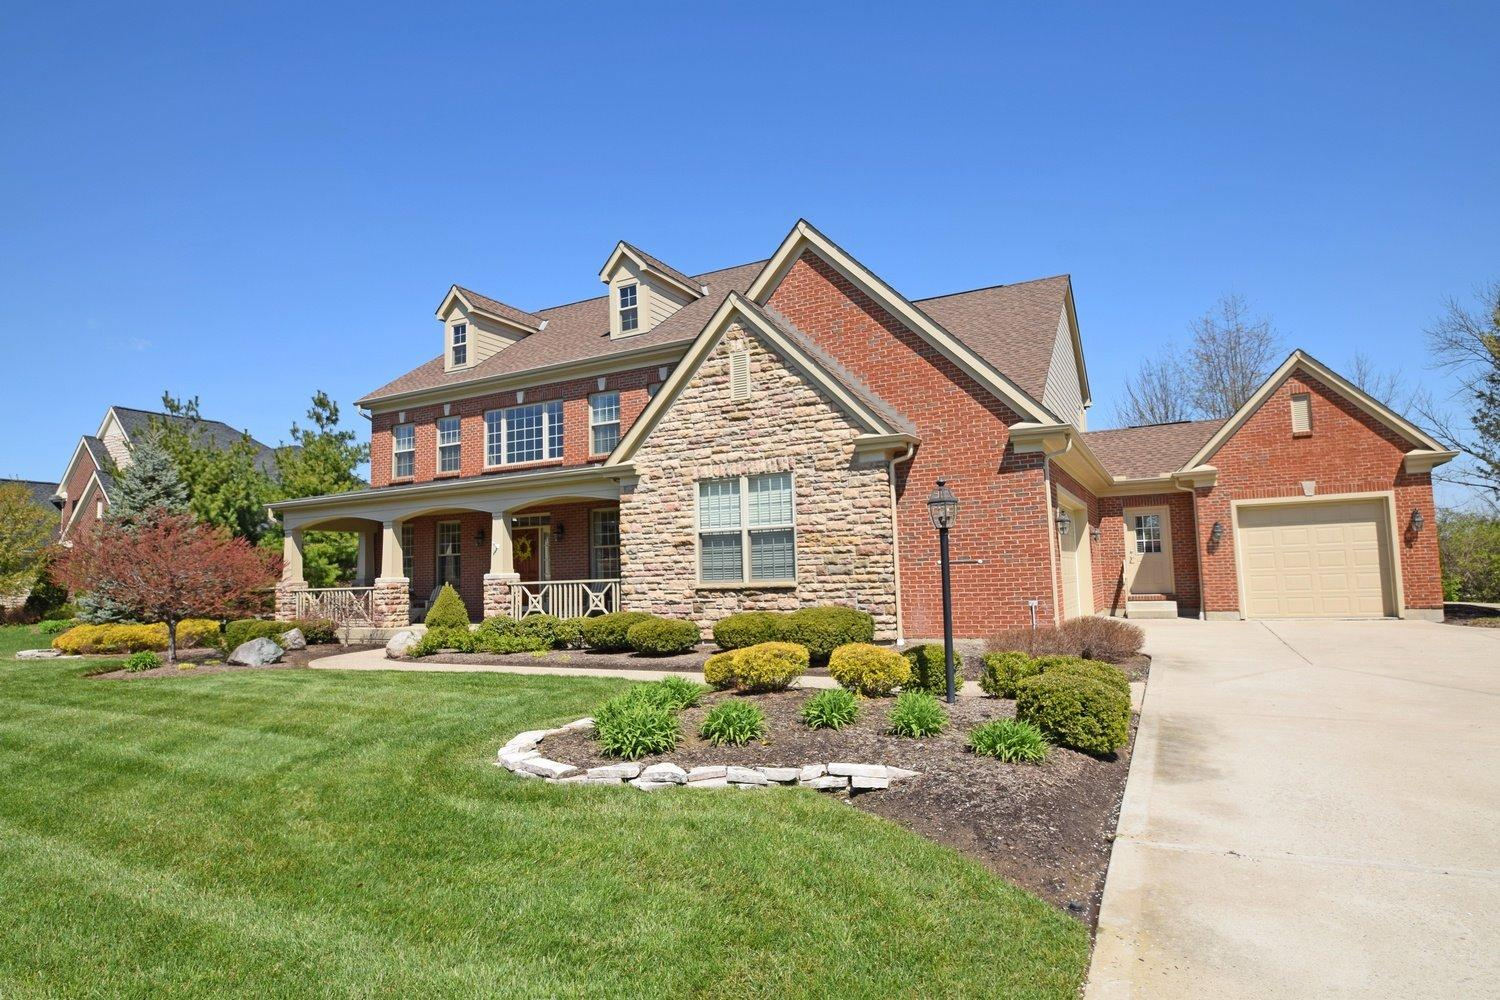 4838 classic turn ln deerfield twp oh 45040 listing for Classic homes real estate